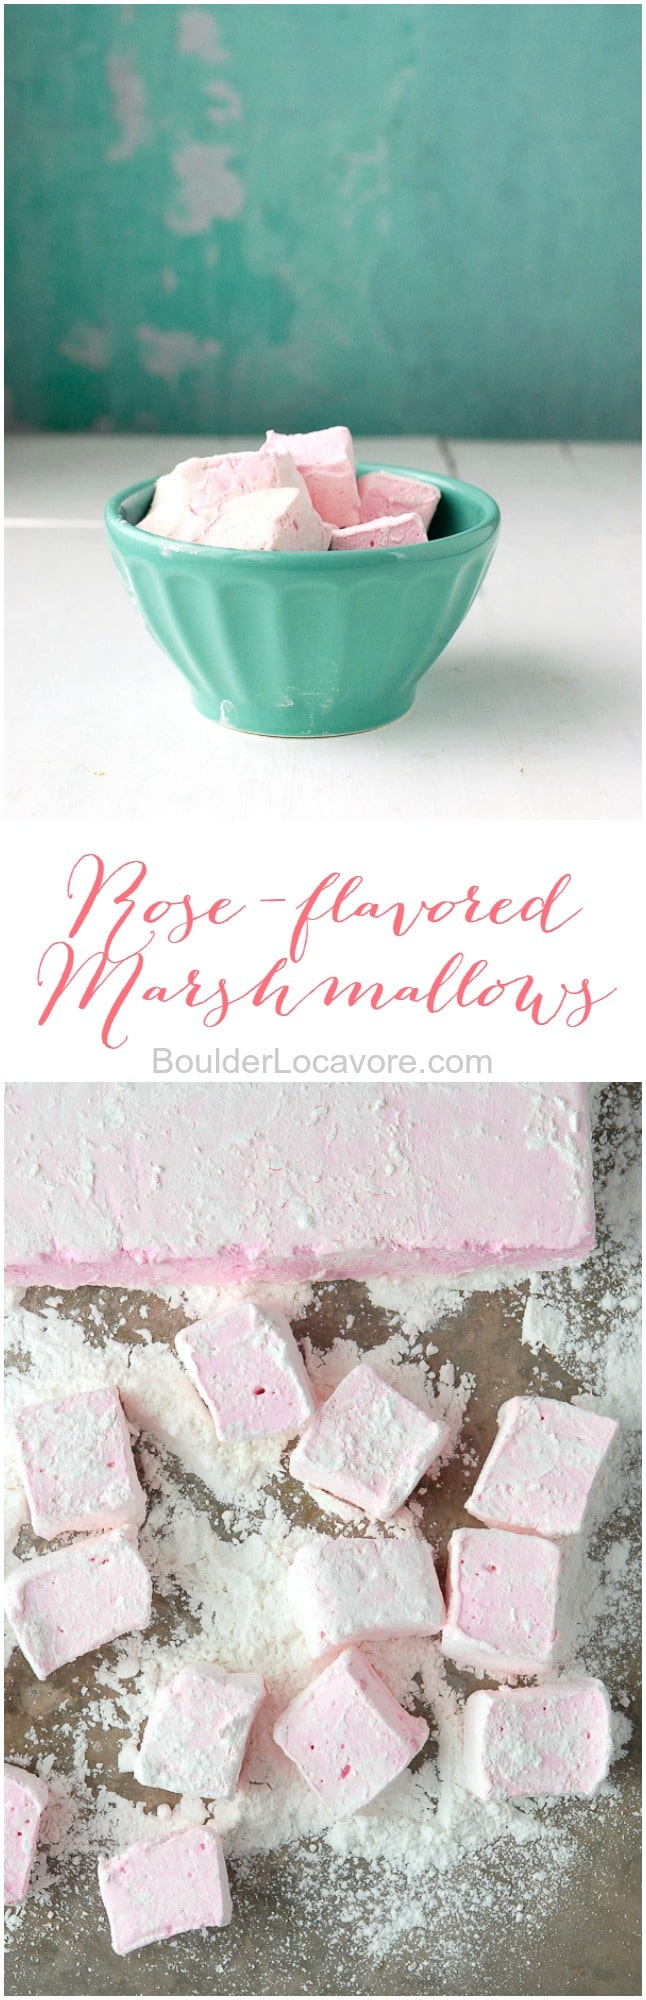 rose flavored marshmallows collage